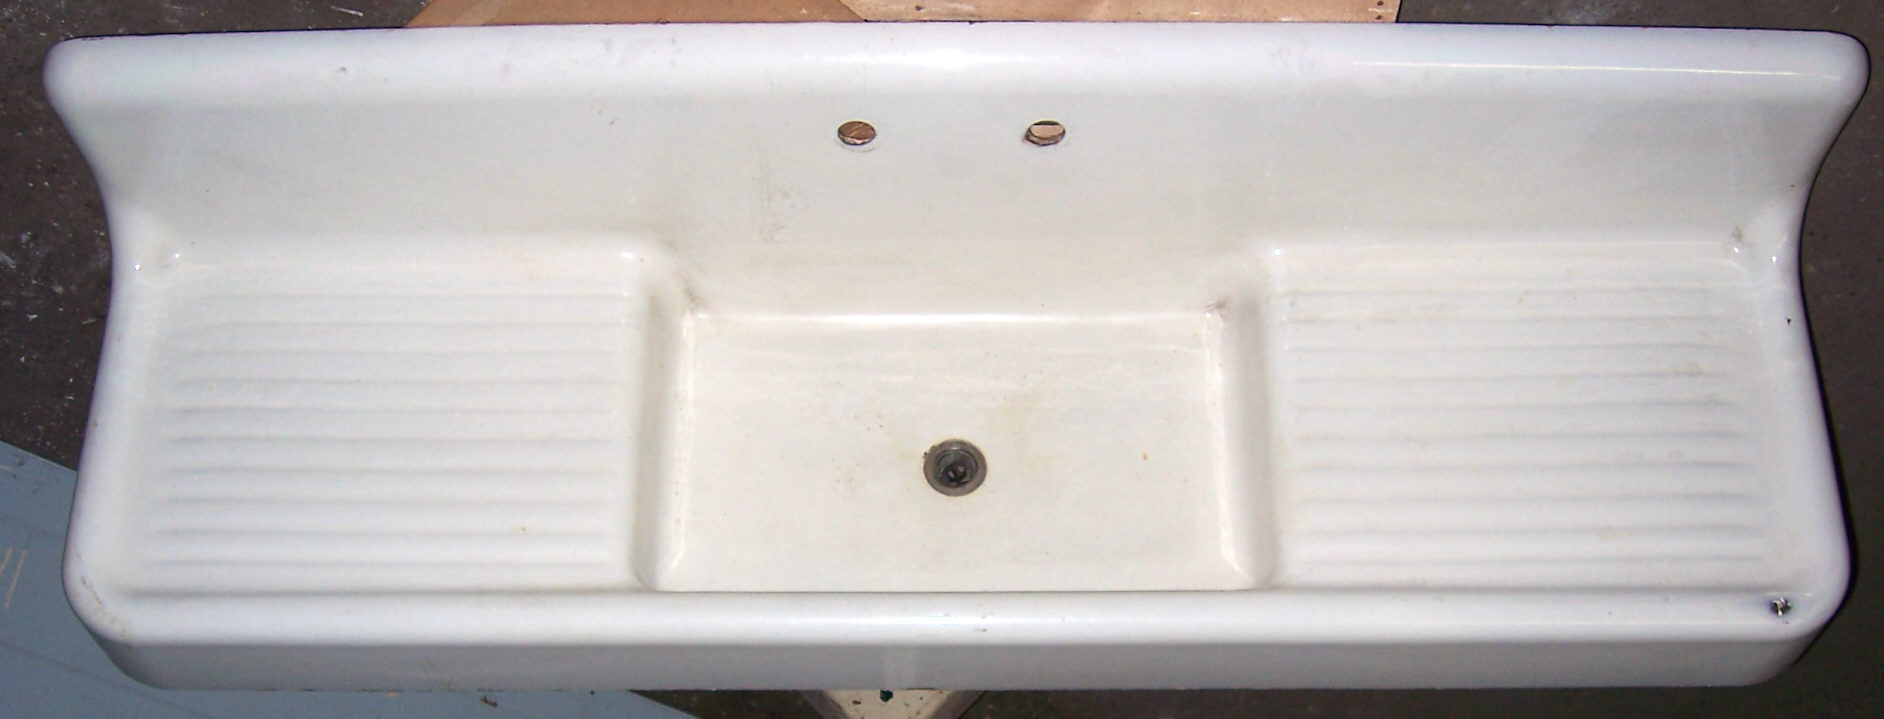 retro kitchen sink with drainboard kitchen sink with drain board kitchen ideas 7780